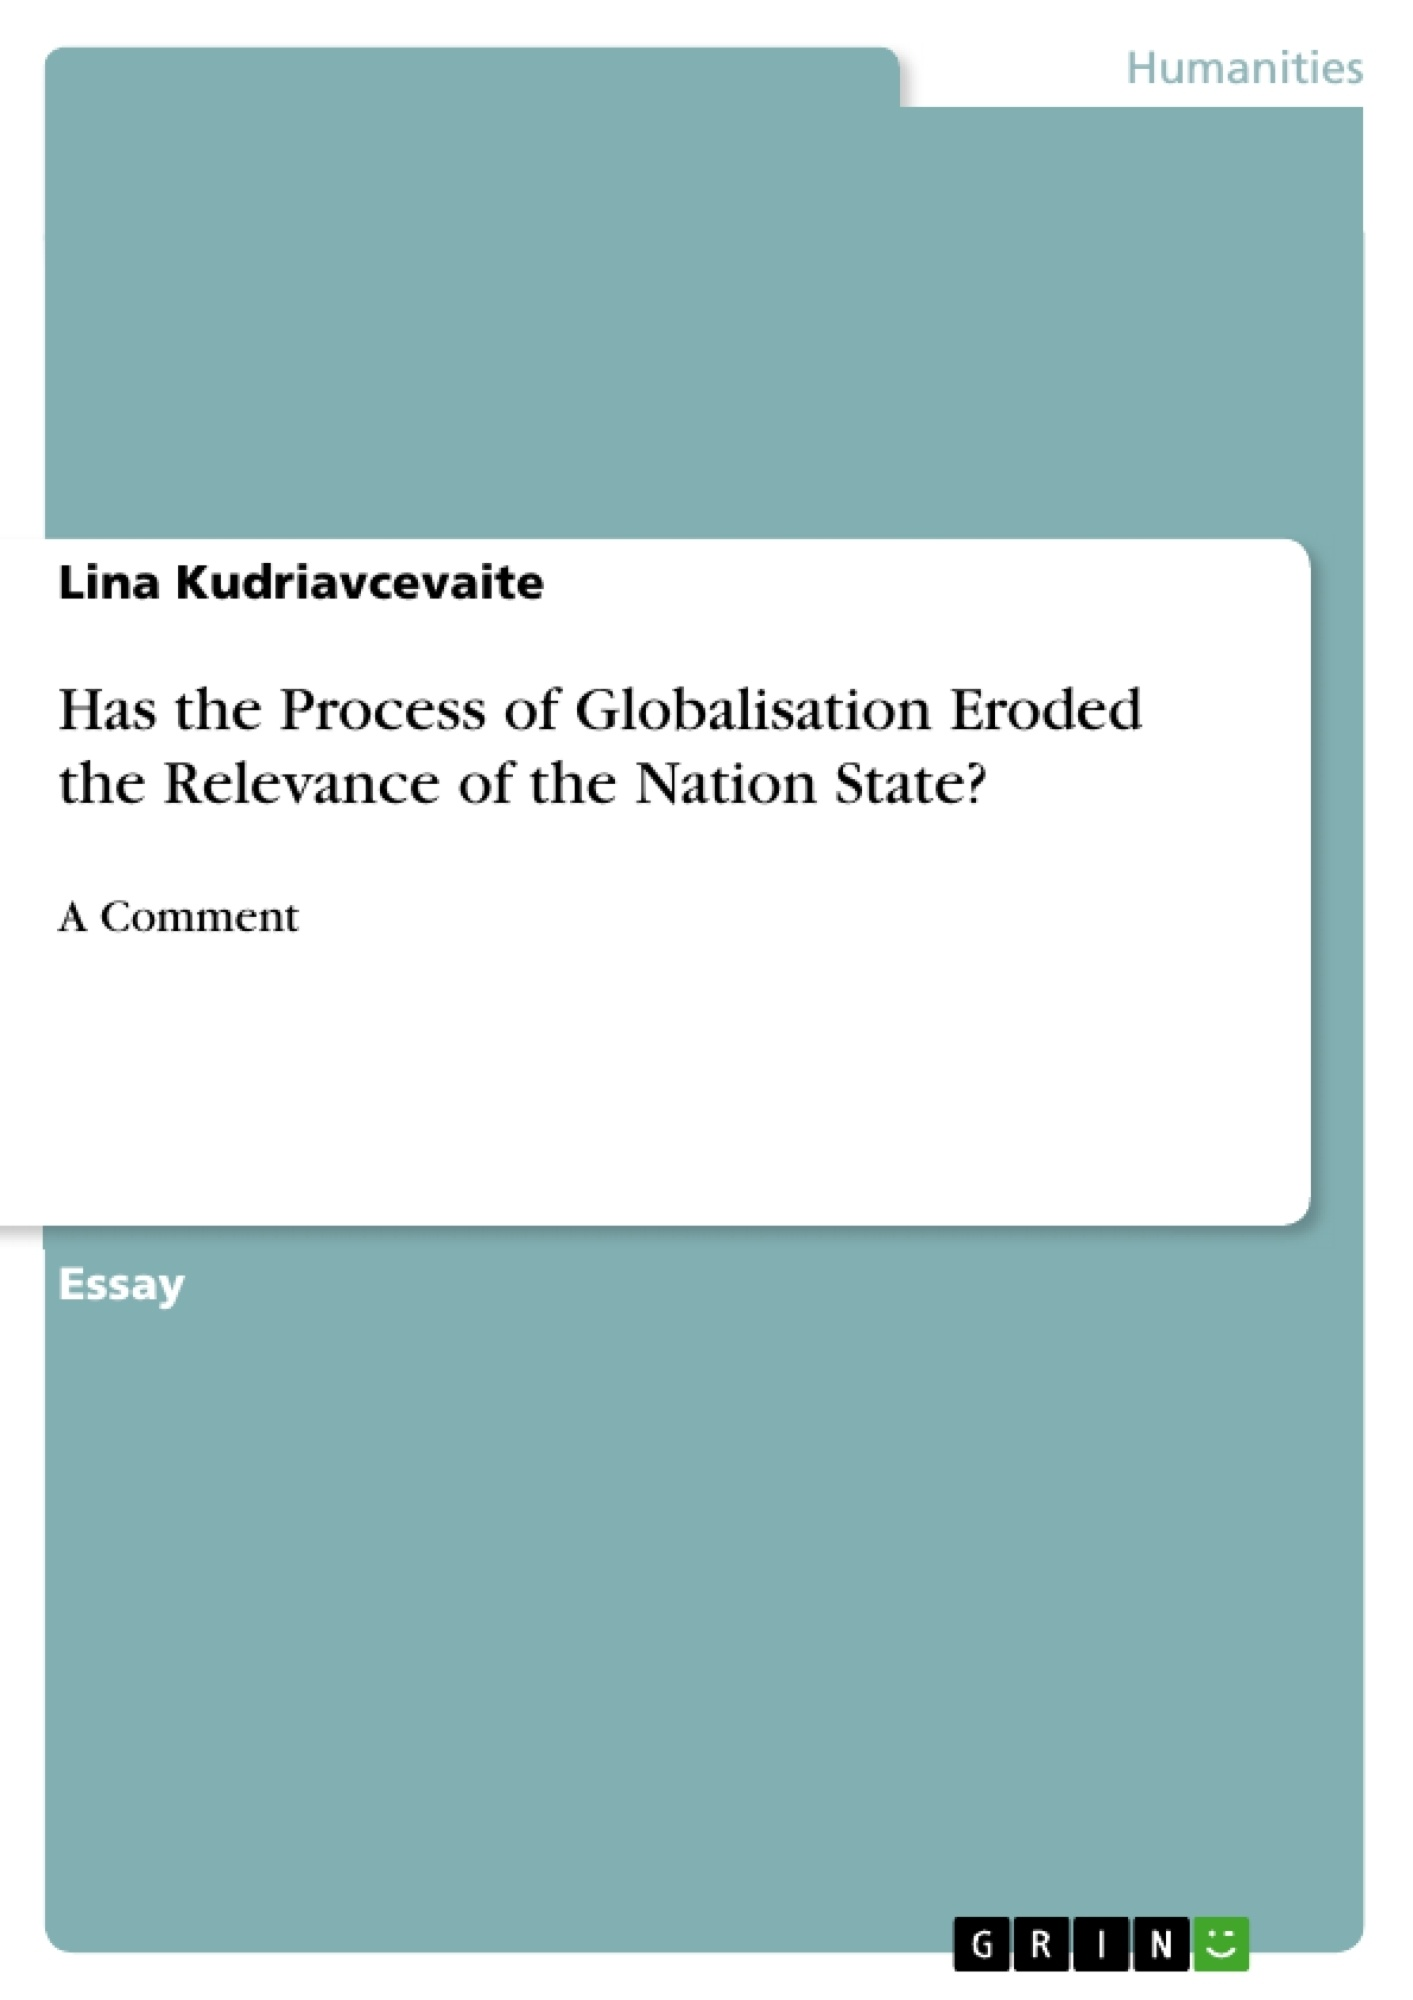 Title: Has the Process of Globalisation Eroded the Relevance of the Nation State?